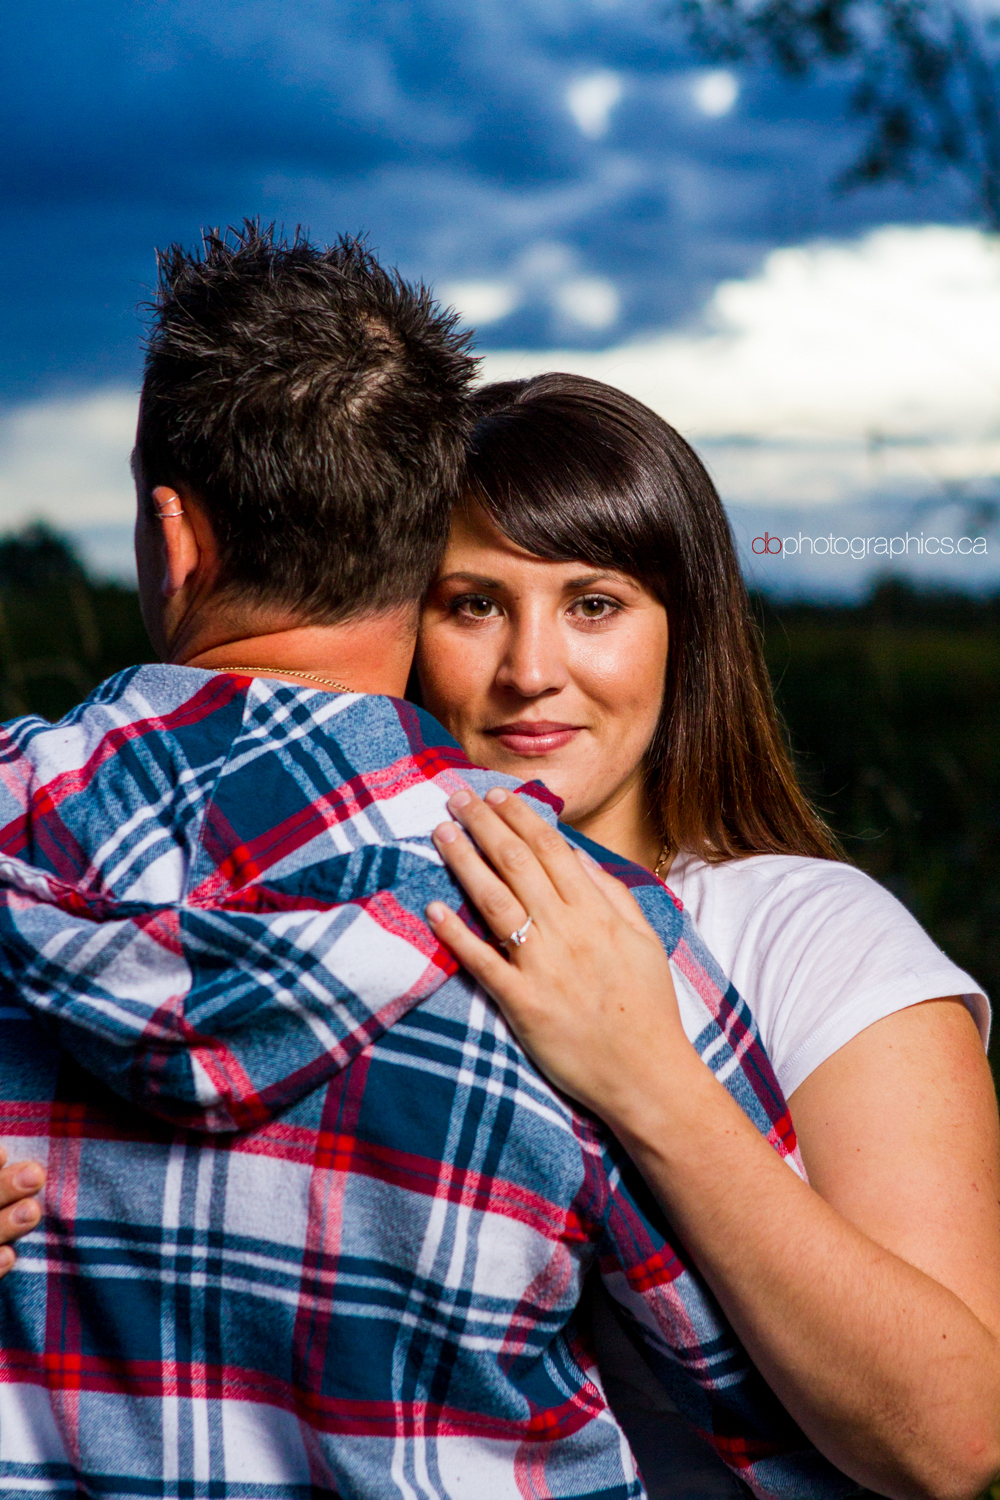 Rob & Alicia Engagement Shoot - 20130922 - 0072.jpg